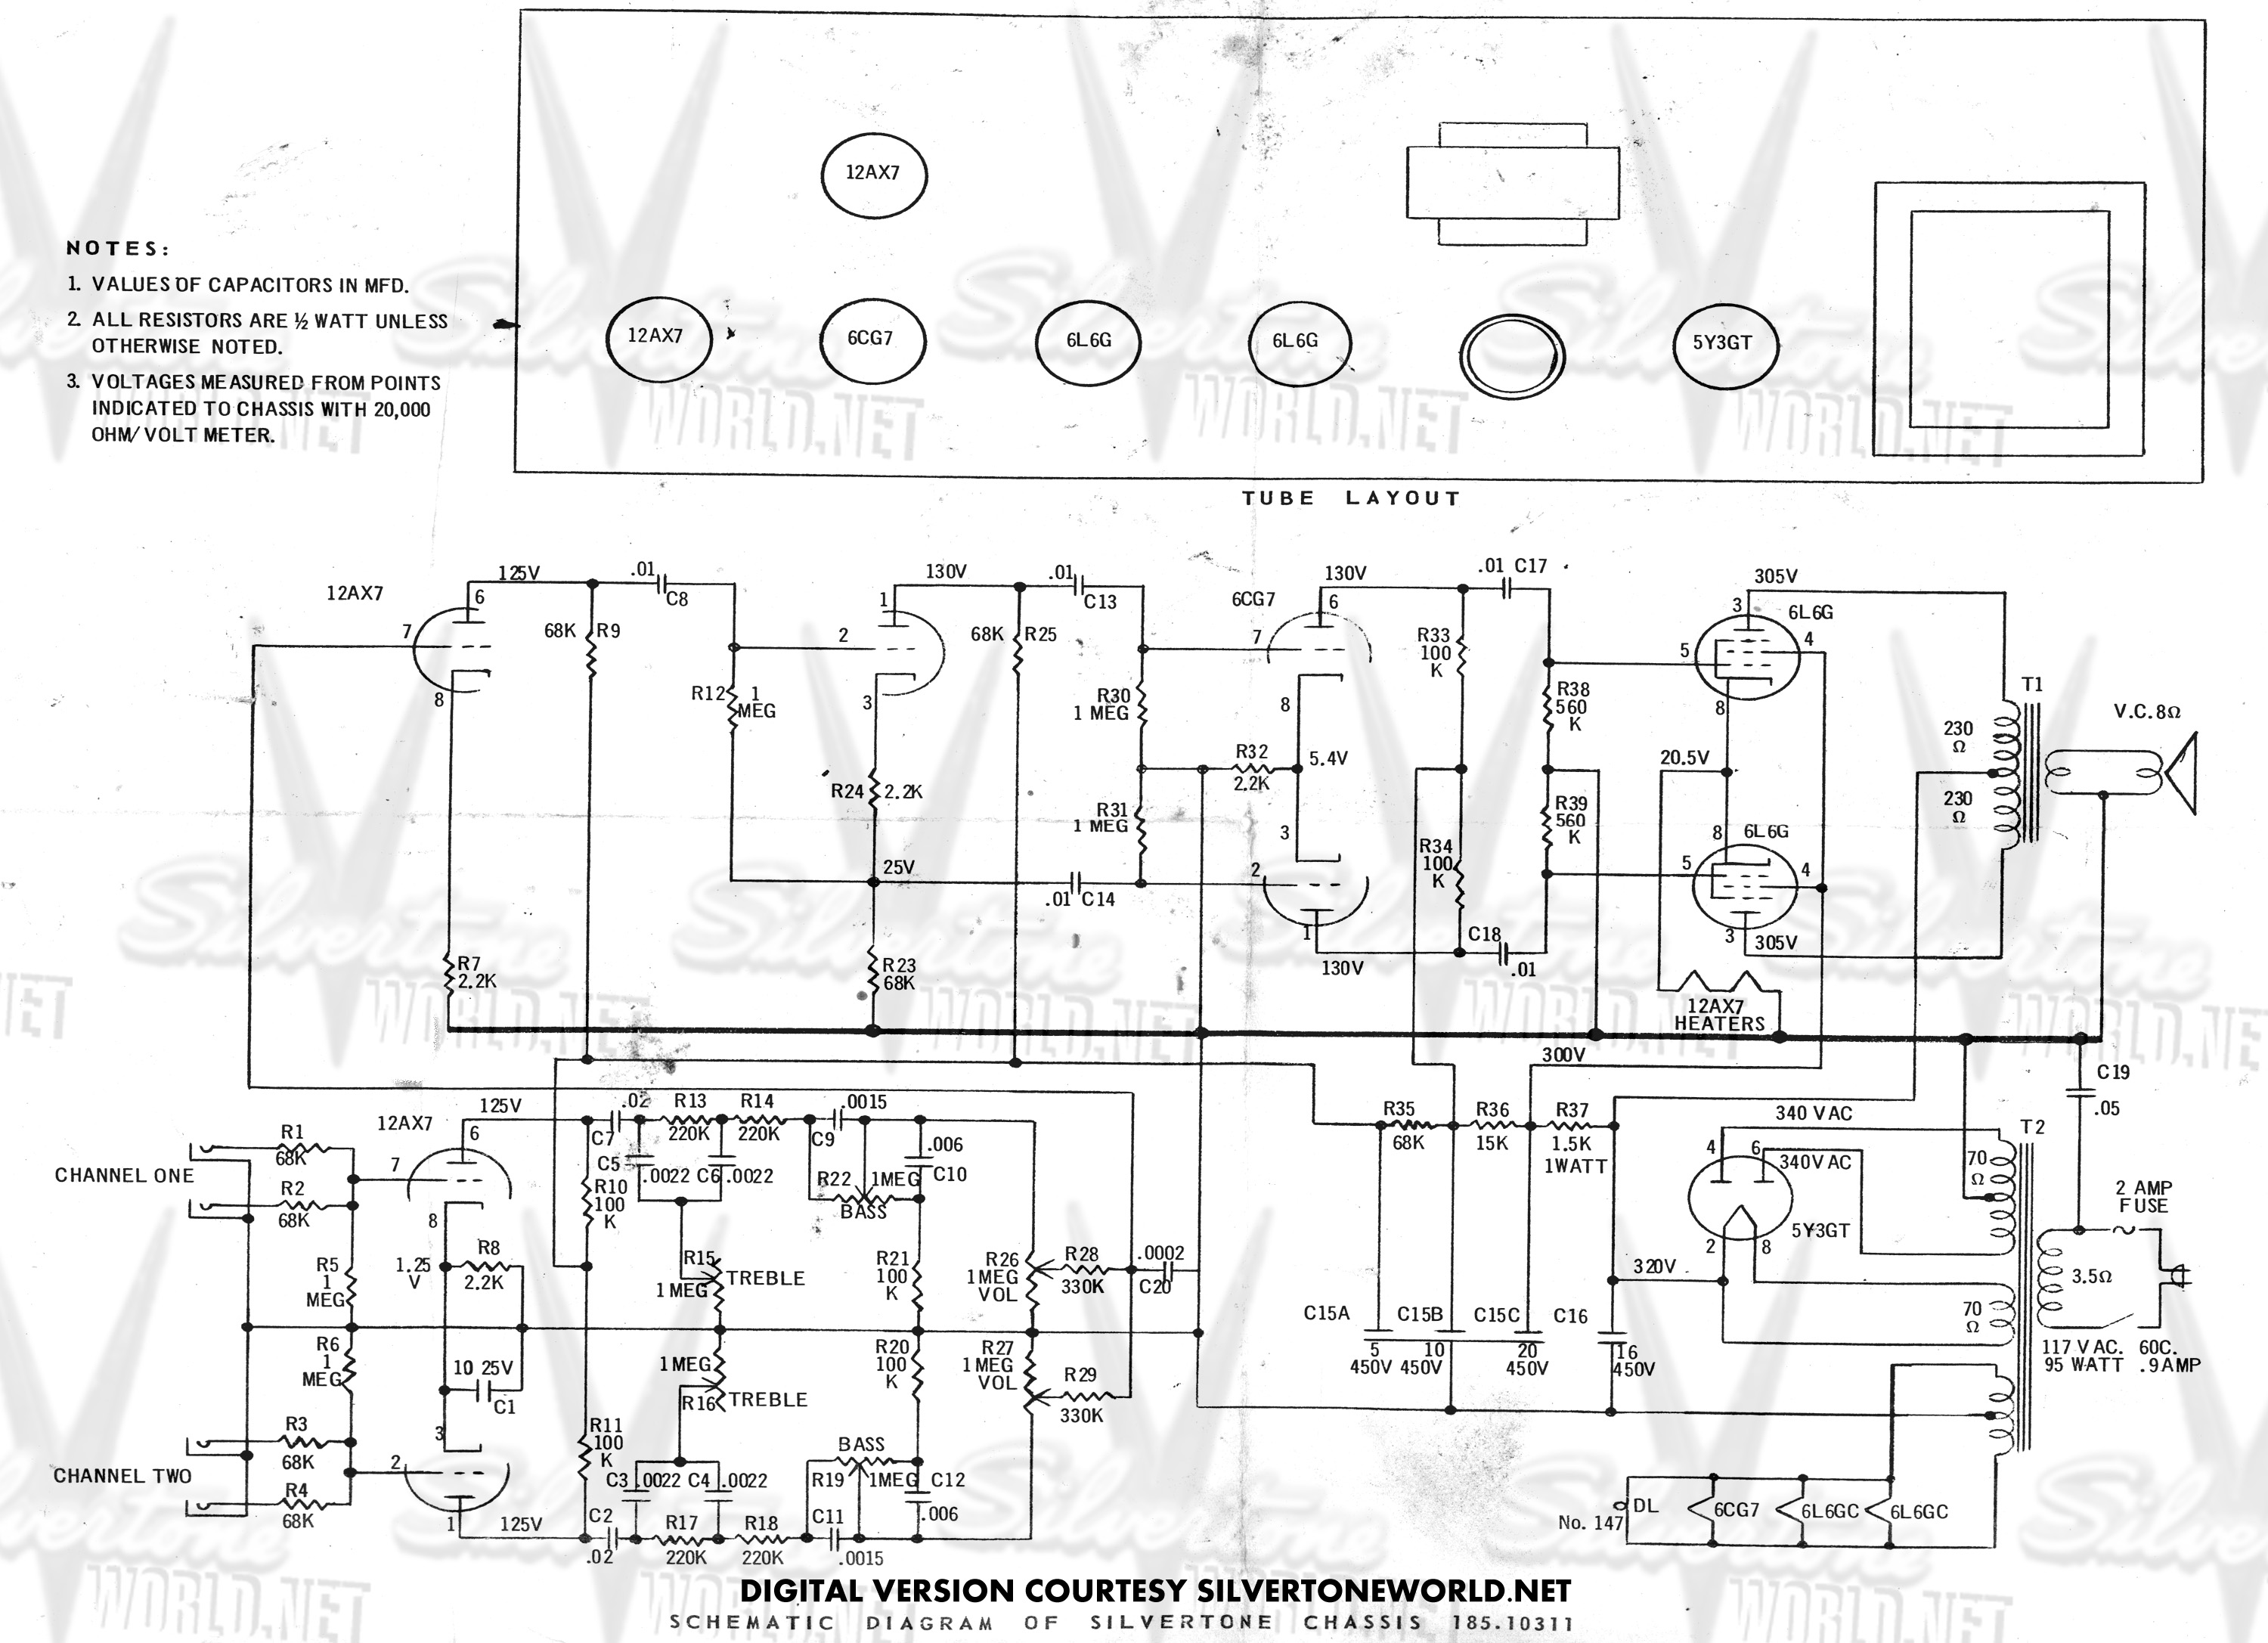 silver tone guitar wiring diagrams emg guitar wiring diagrams 1 volume 1 tone silvertone world - division 57 - schematics, manuals and ...